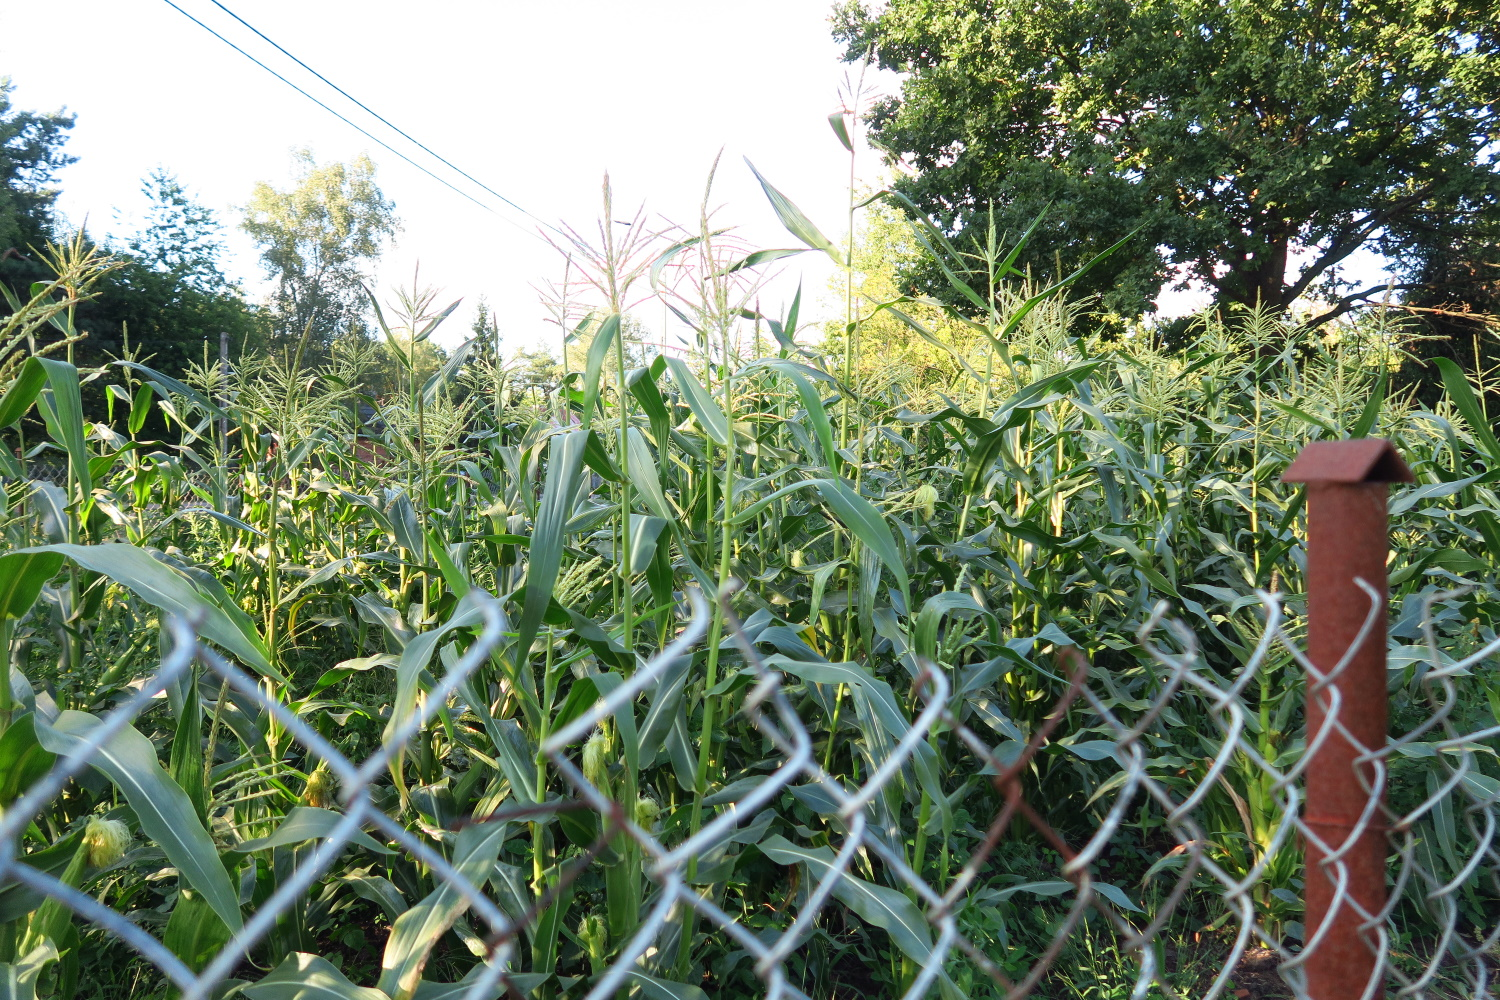 This fence is your typical chain link fence. -about 5' high.